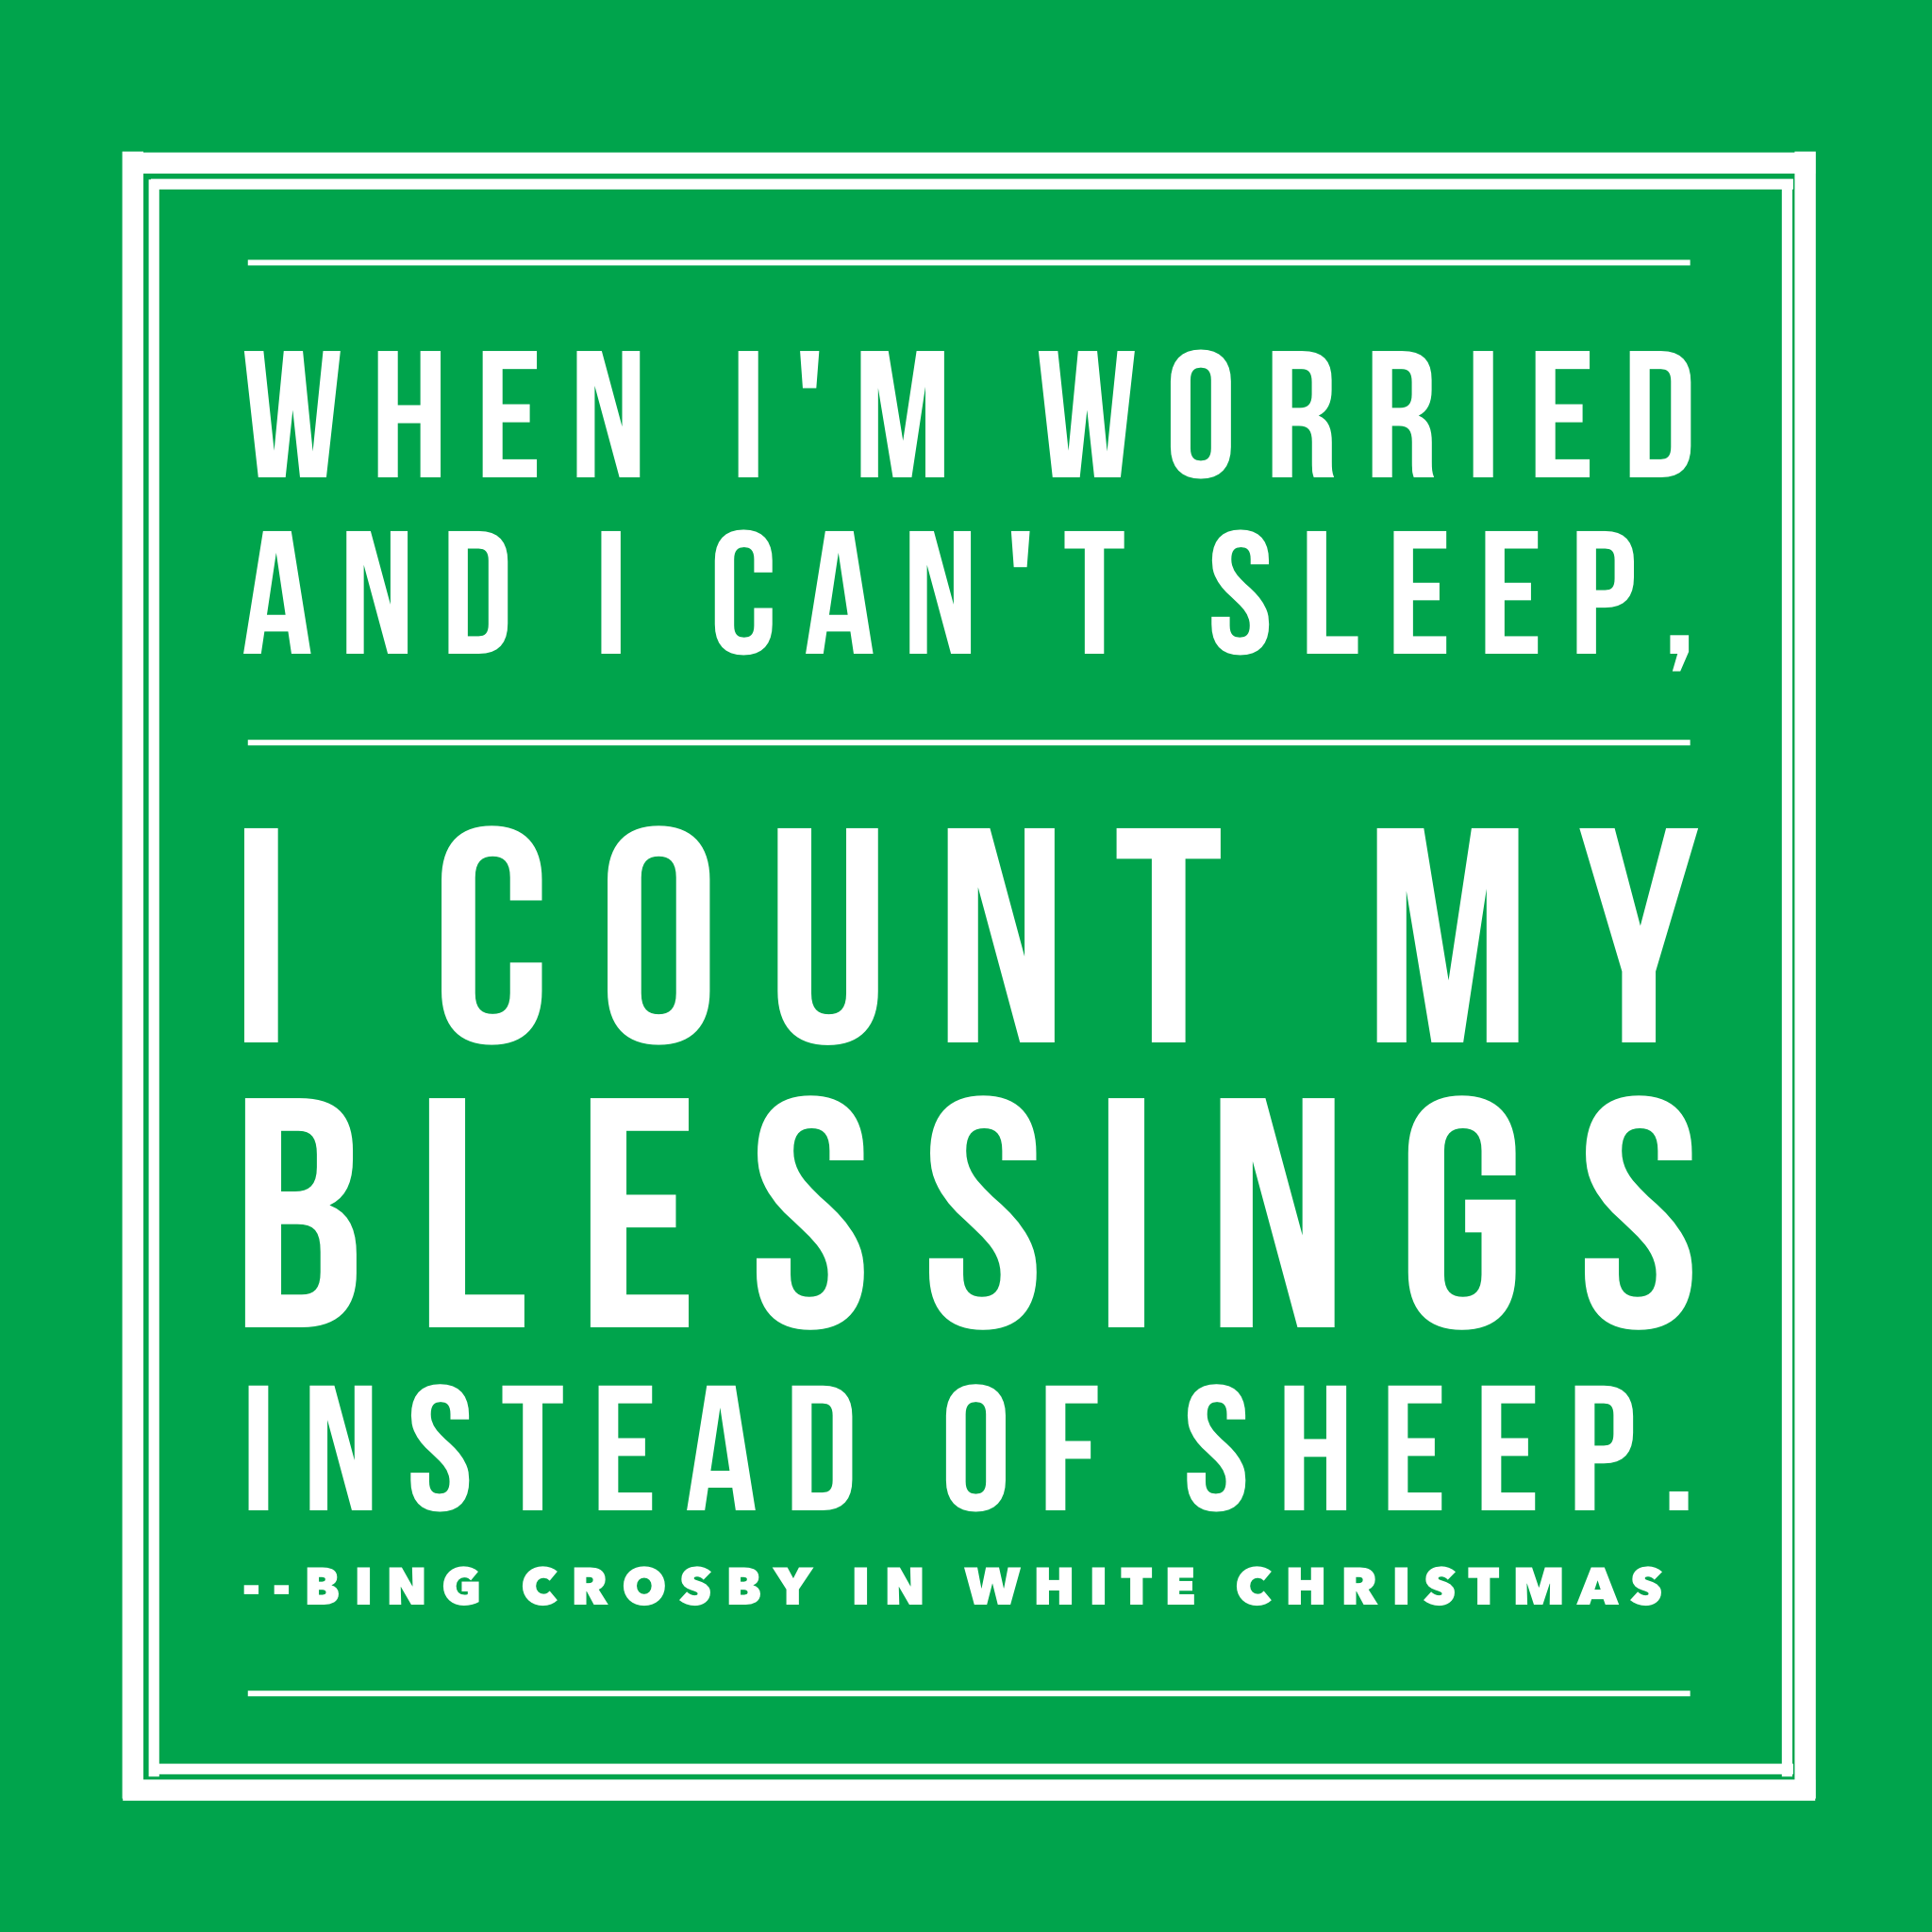 When I'm worried and I can't sleep. I count my blessings instead of sheep. - Bing Crosby quote